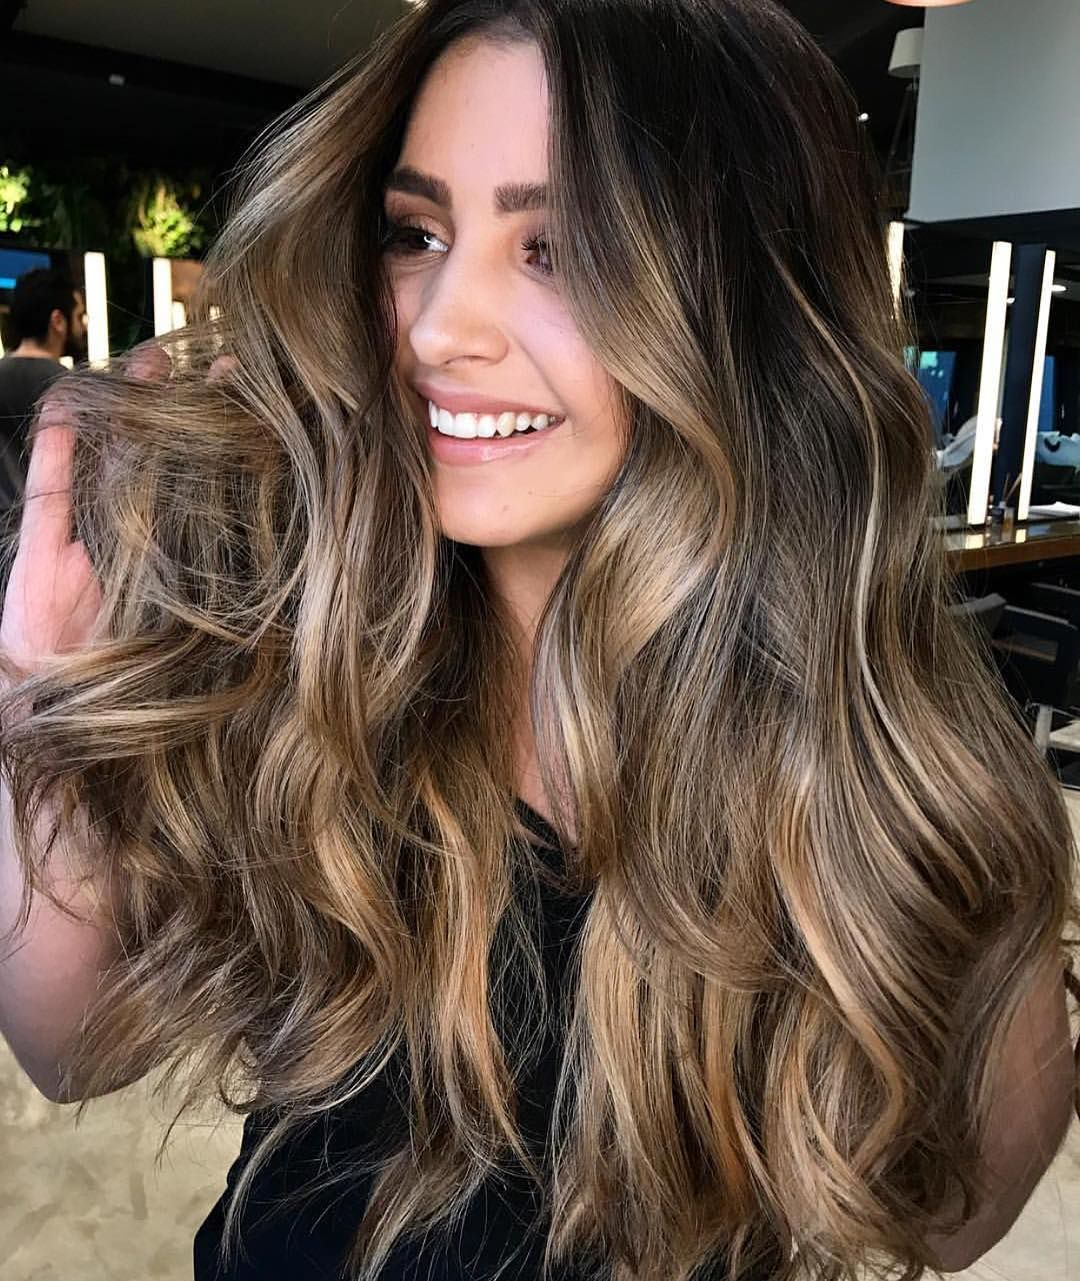 Hair and beauty]Balayage Hair front view in 2019